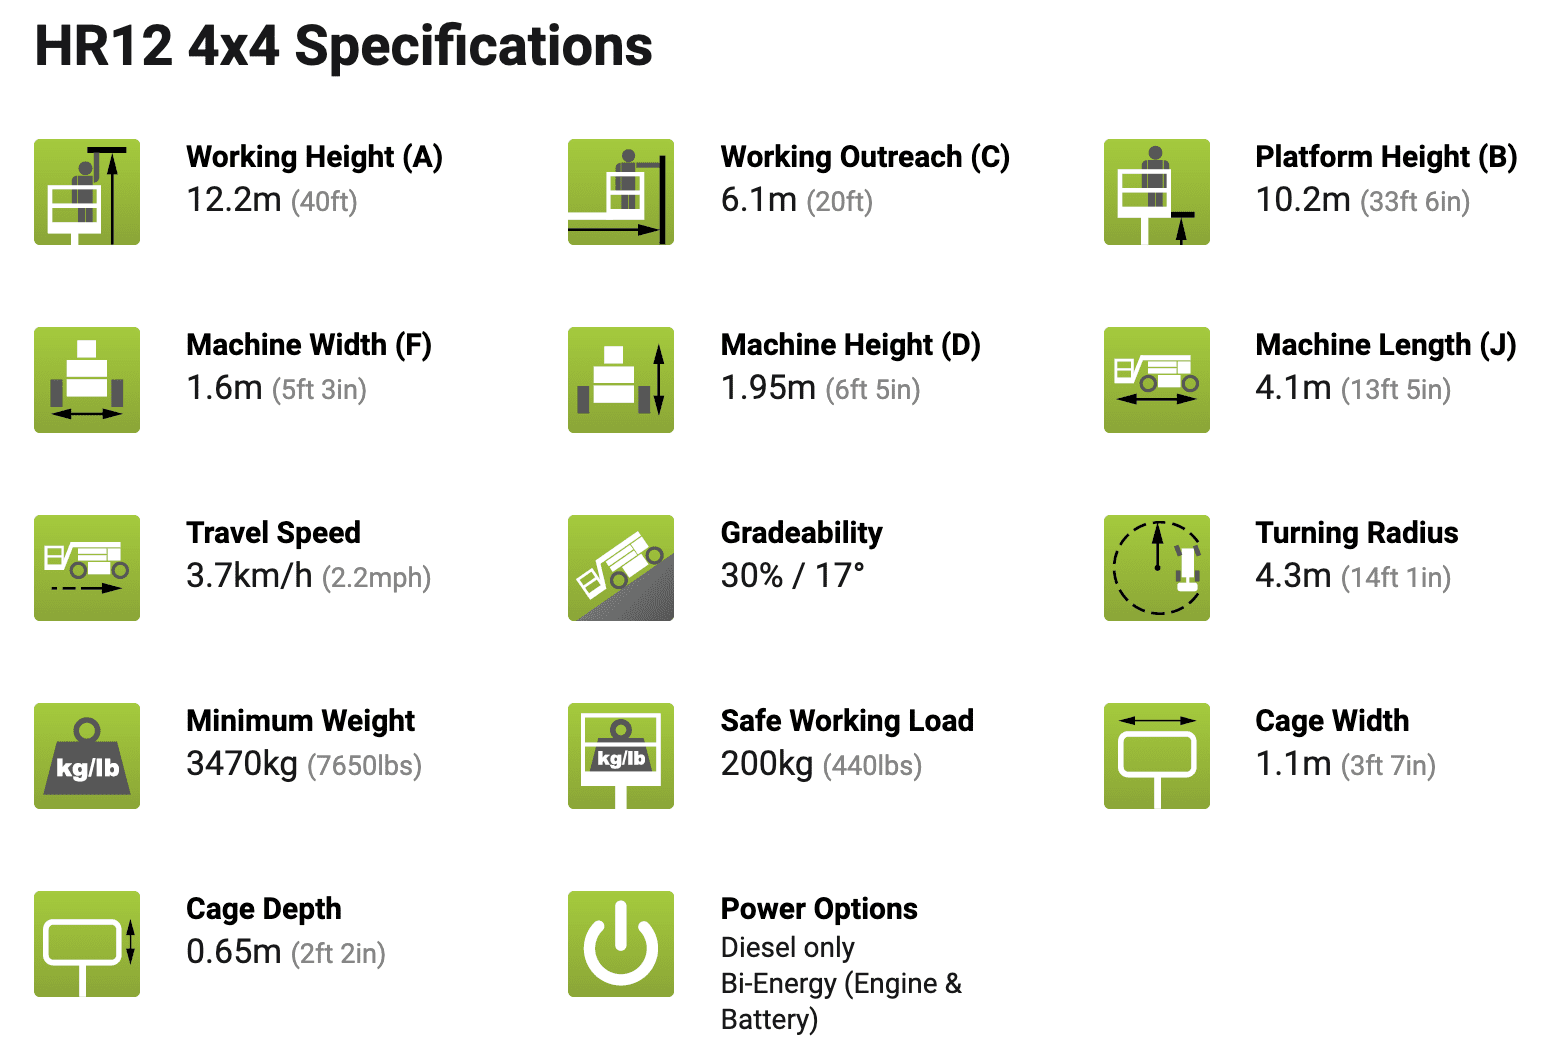 specifications HR12